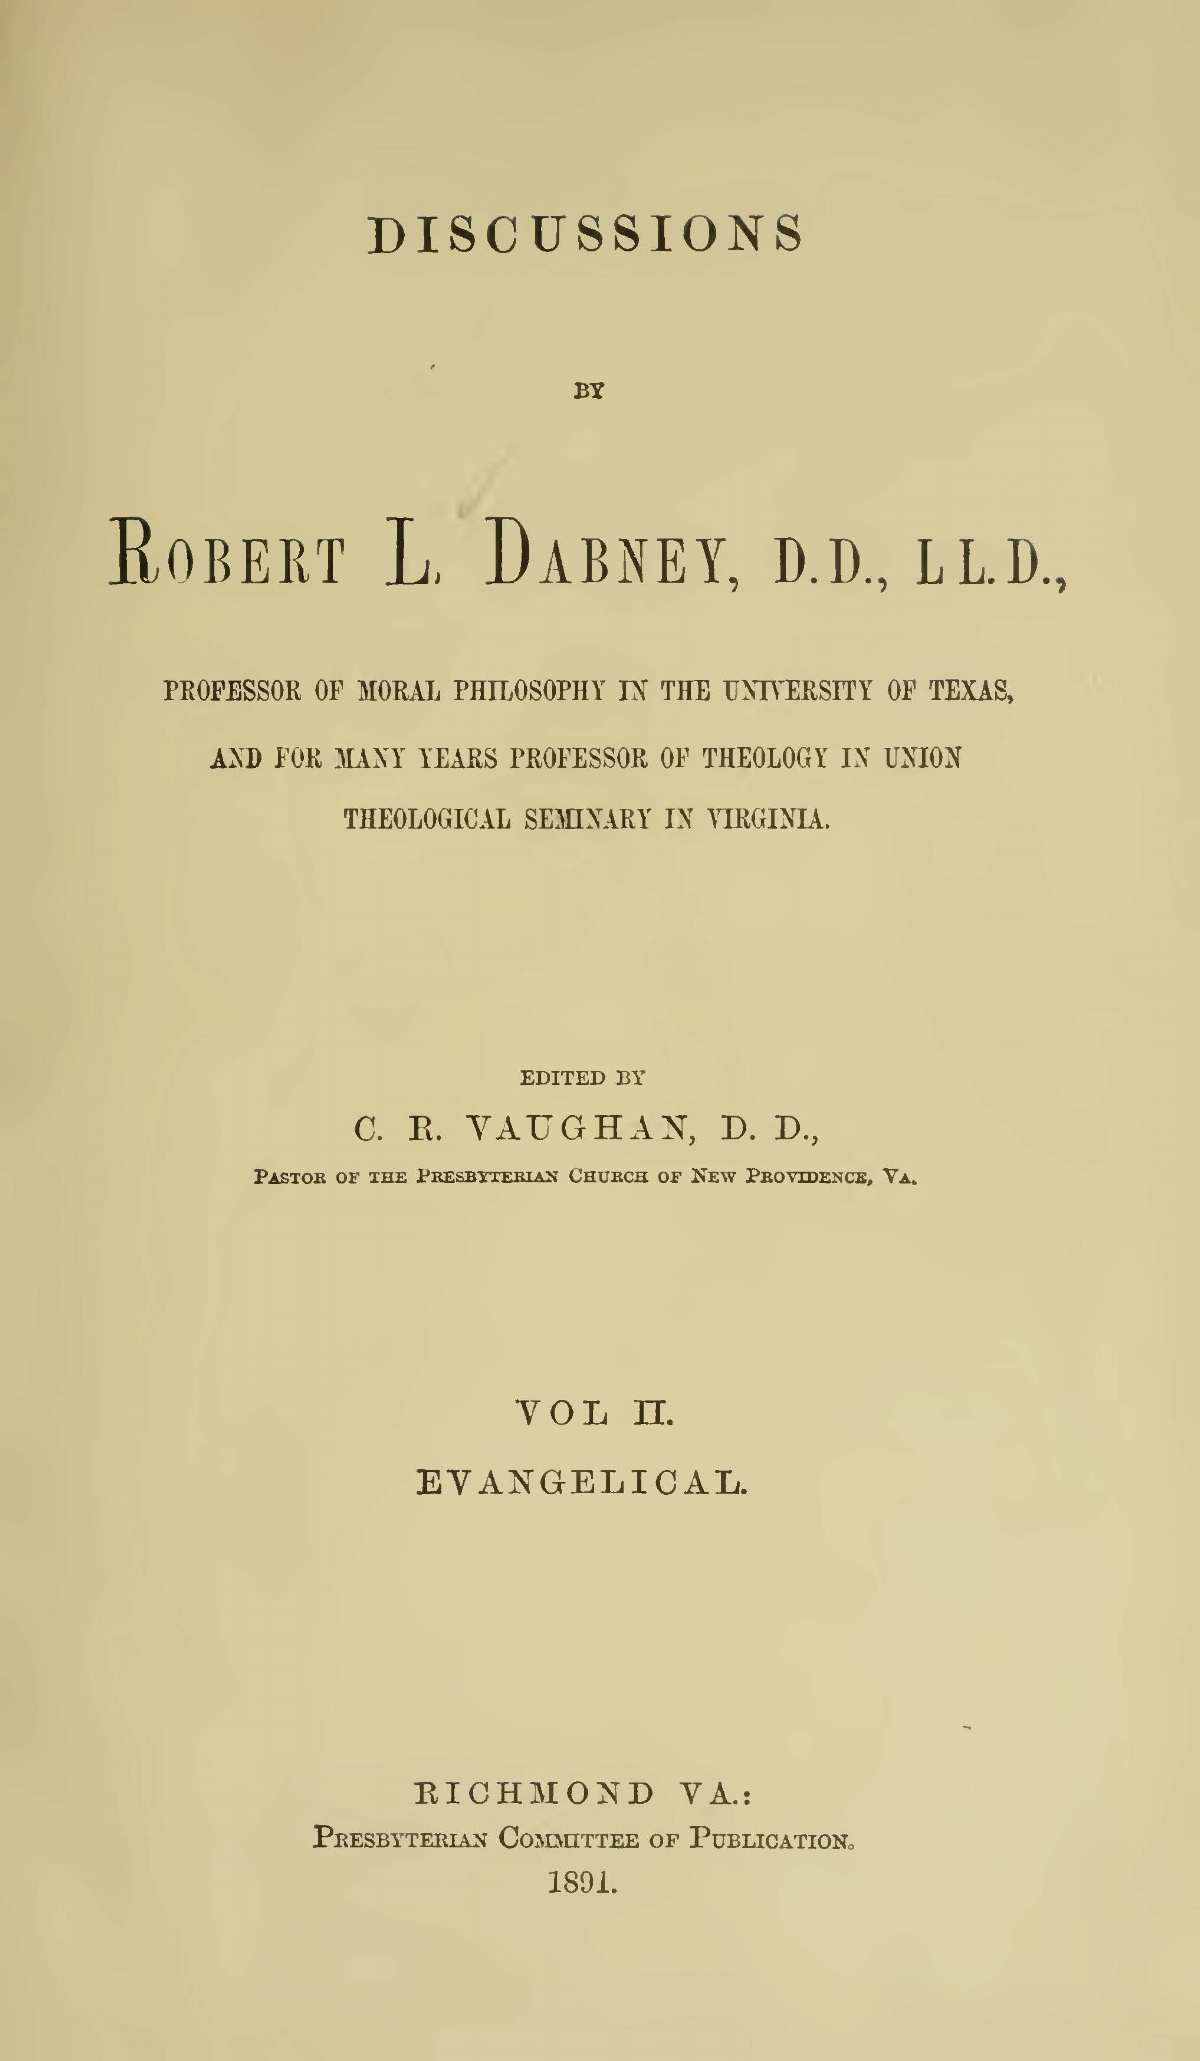 Dabney, Robert Lewis, Discussions Vol. 2 Title Page.jpg